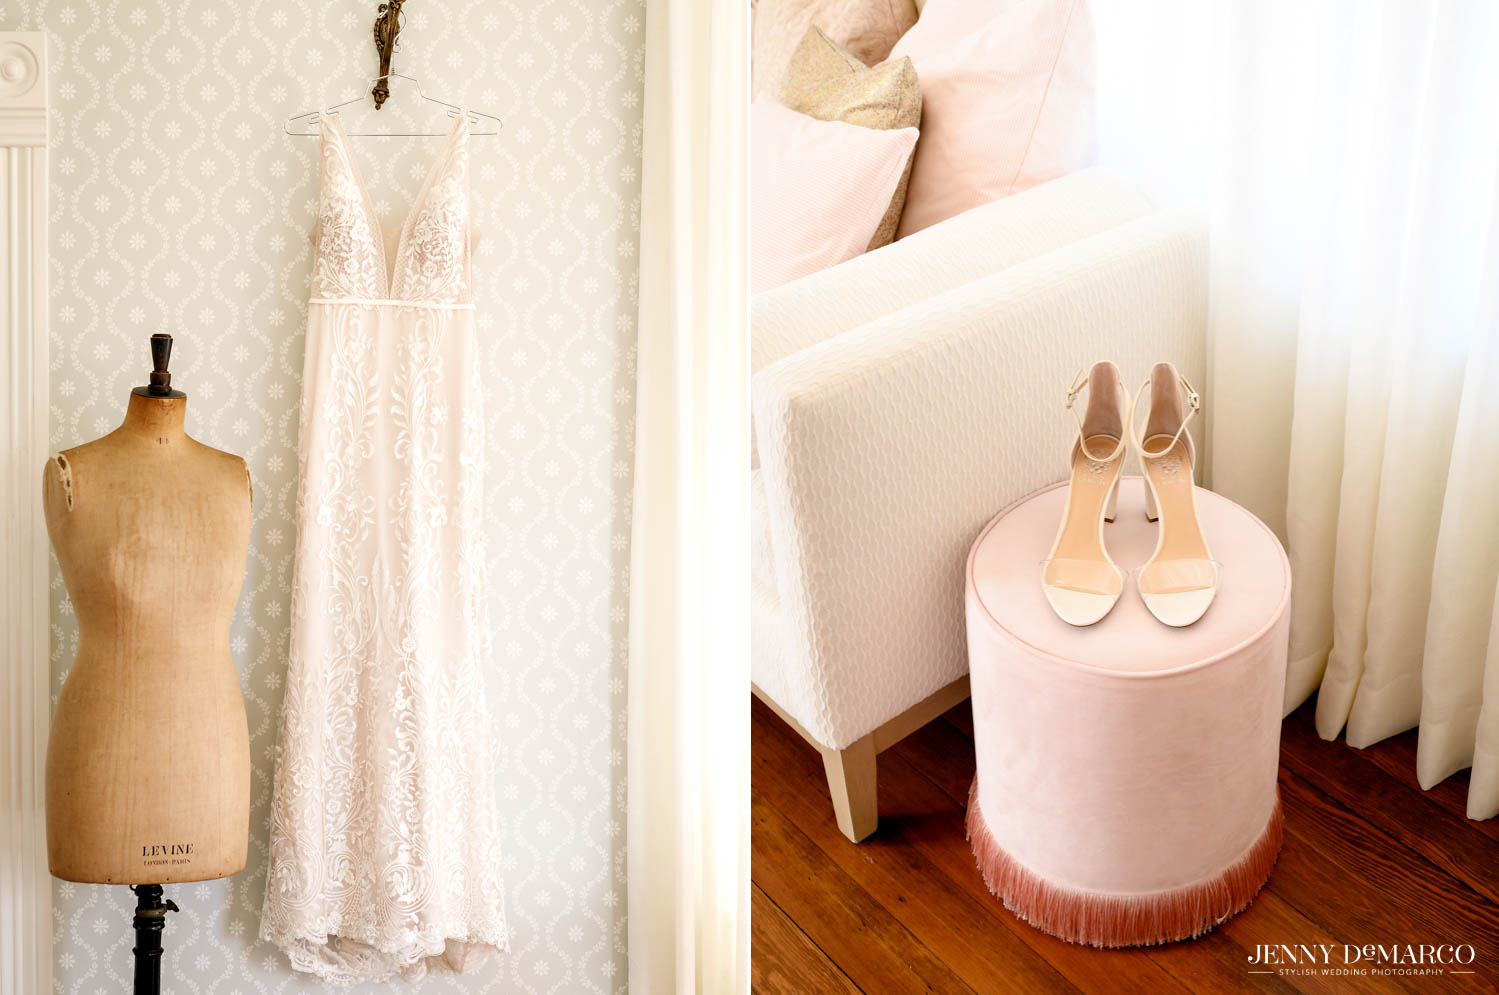 brides dress hanging on the wall and brides heels sitting on a pink stool